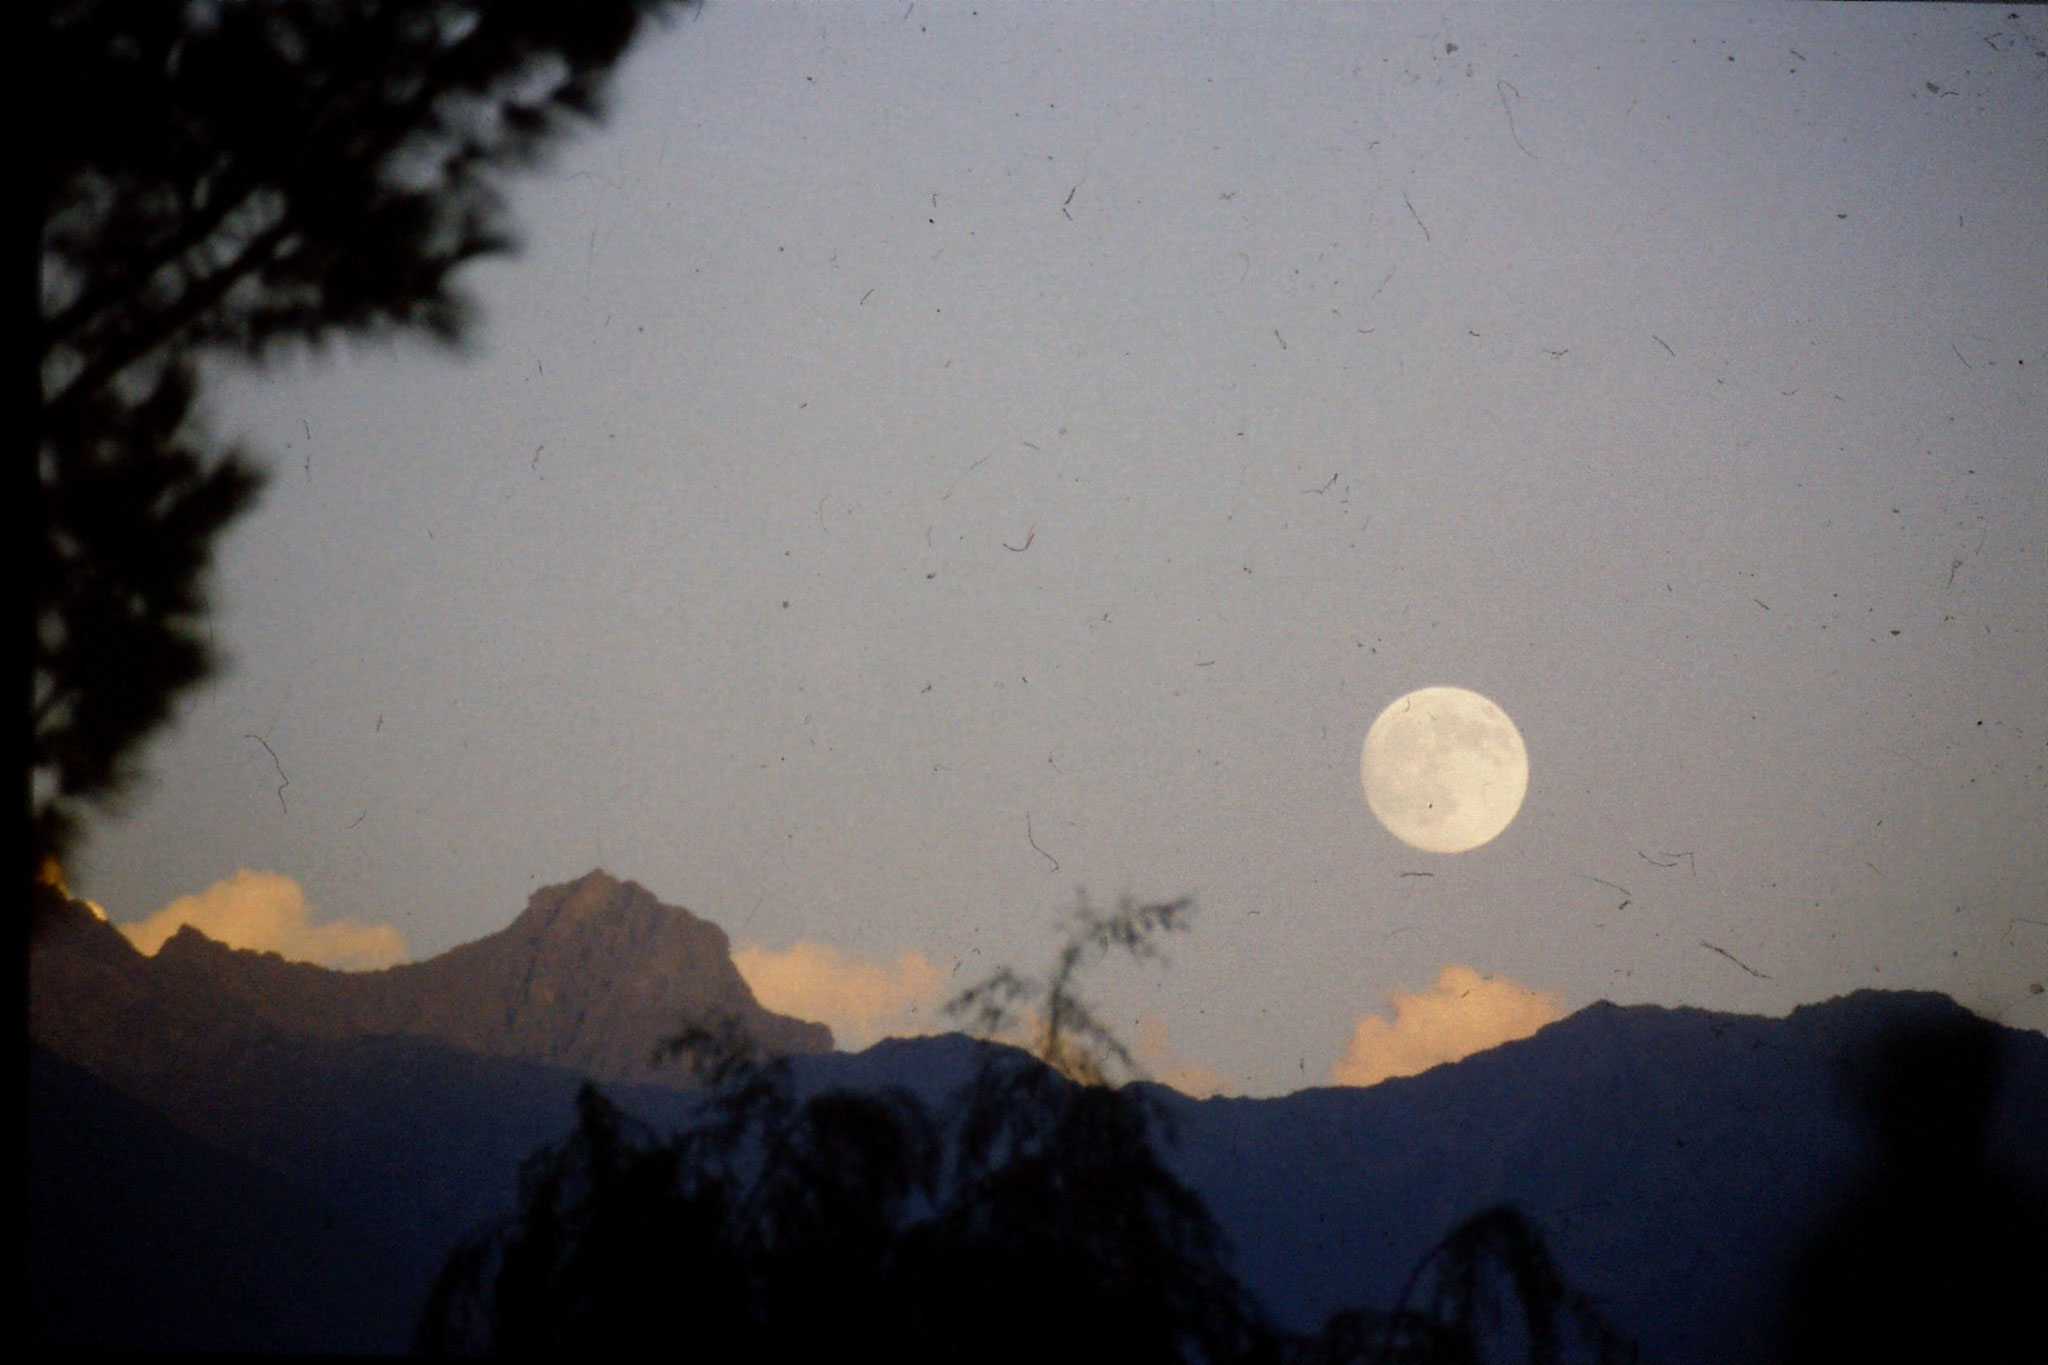 14/9/1989: 0: moon over Gilgit